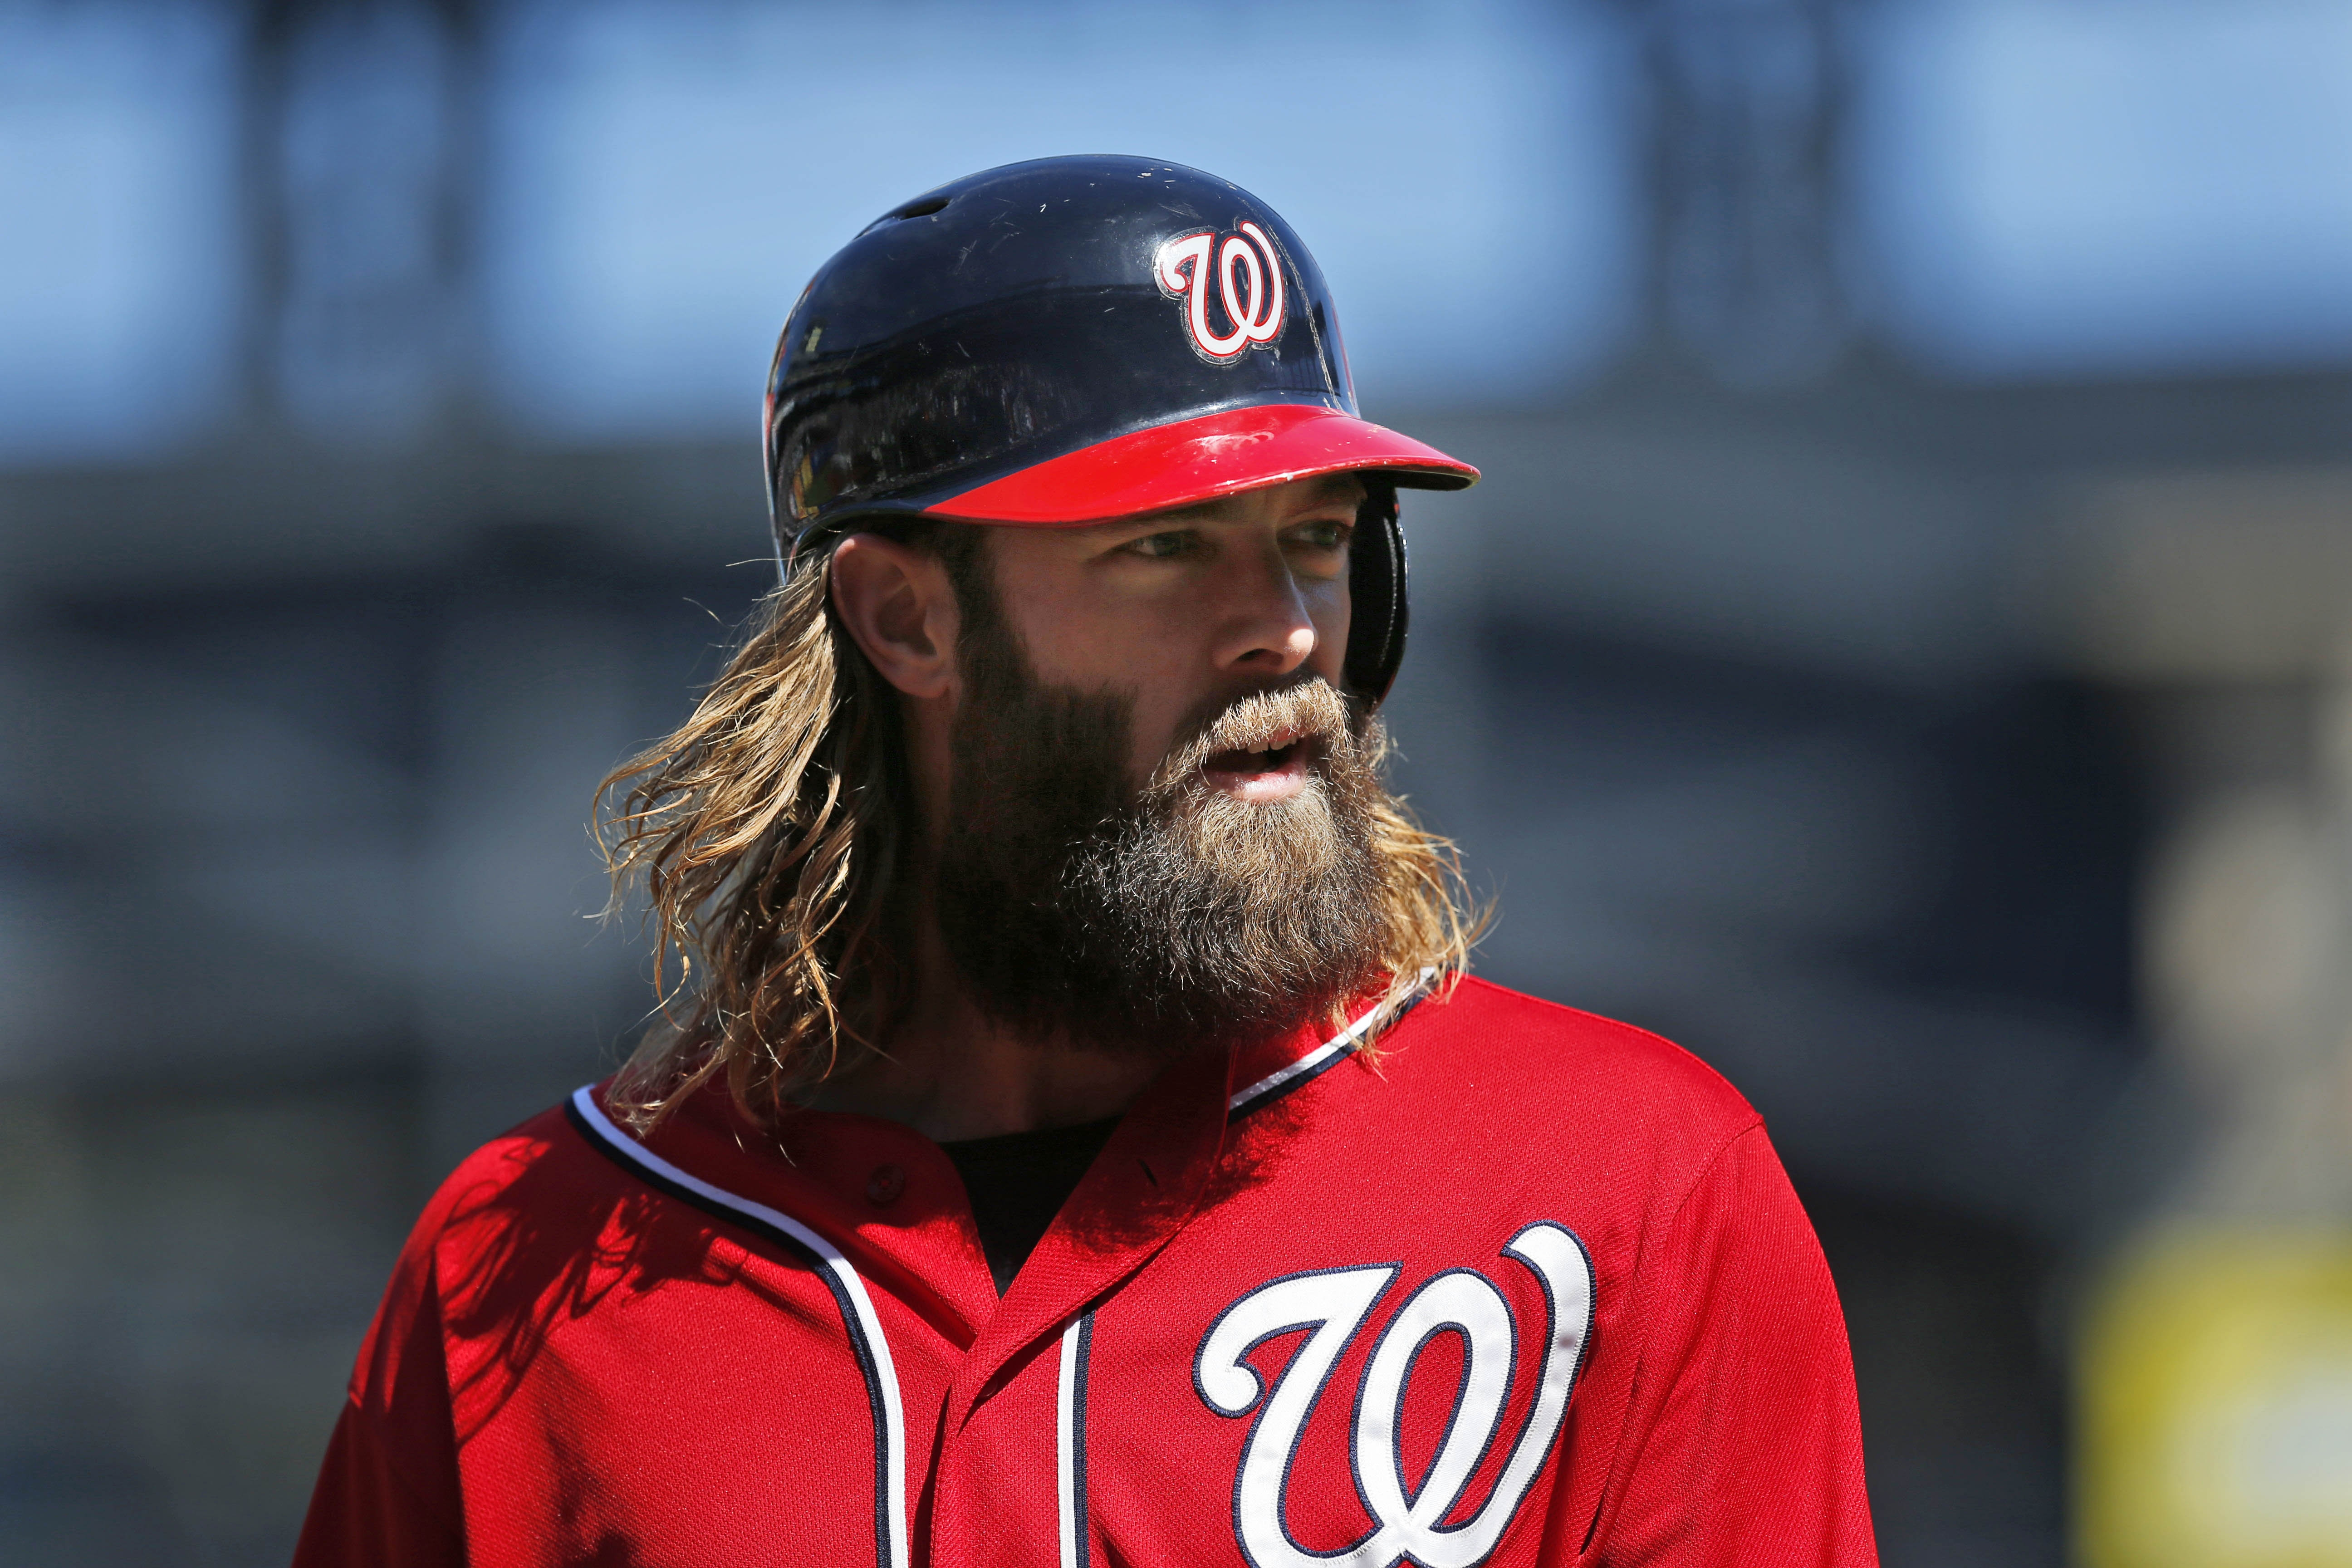 Werth signing autographs from the pokey